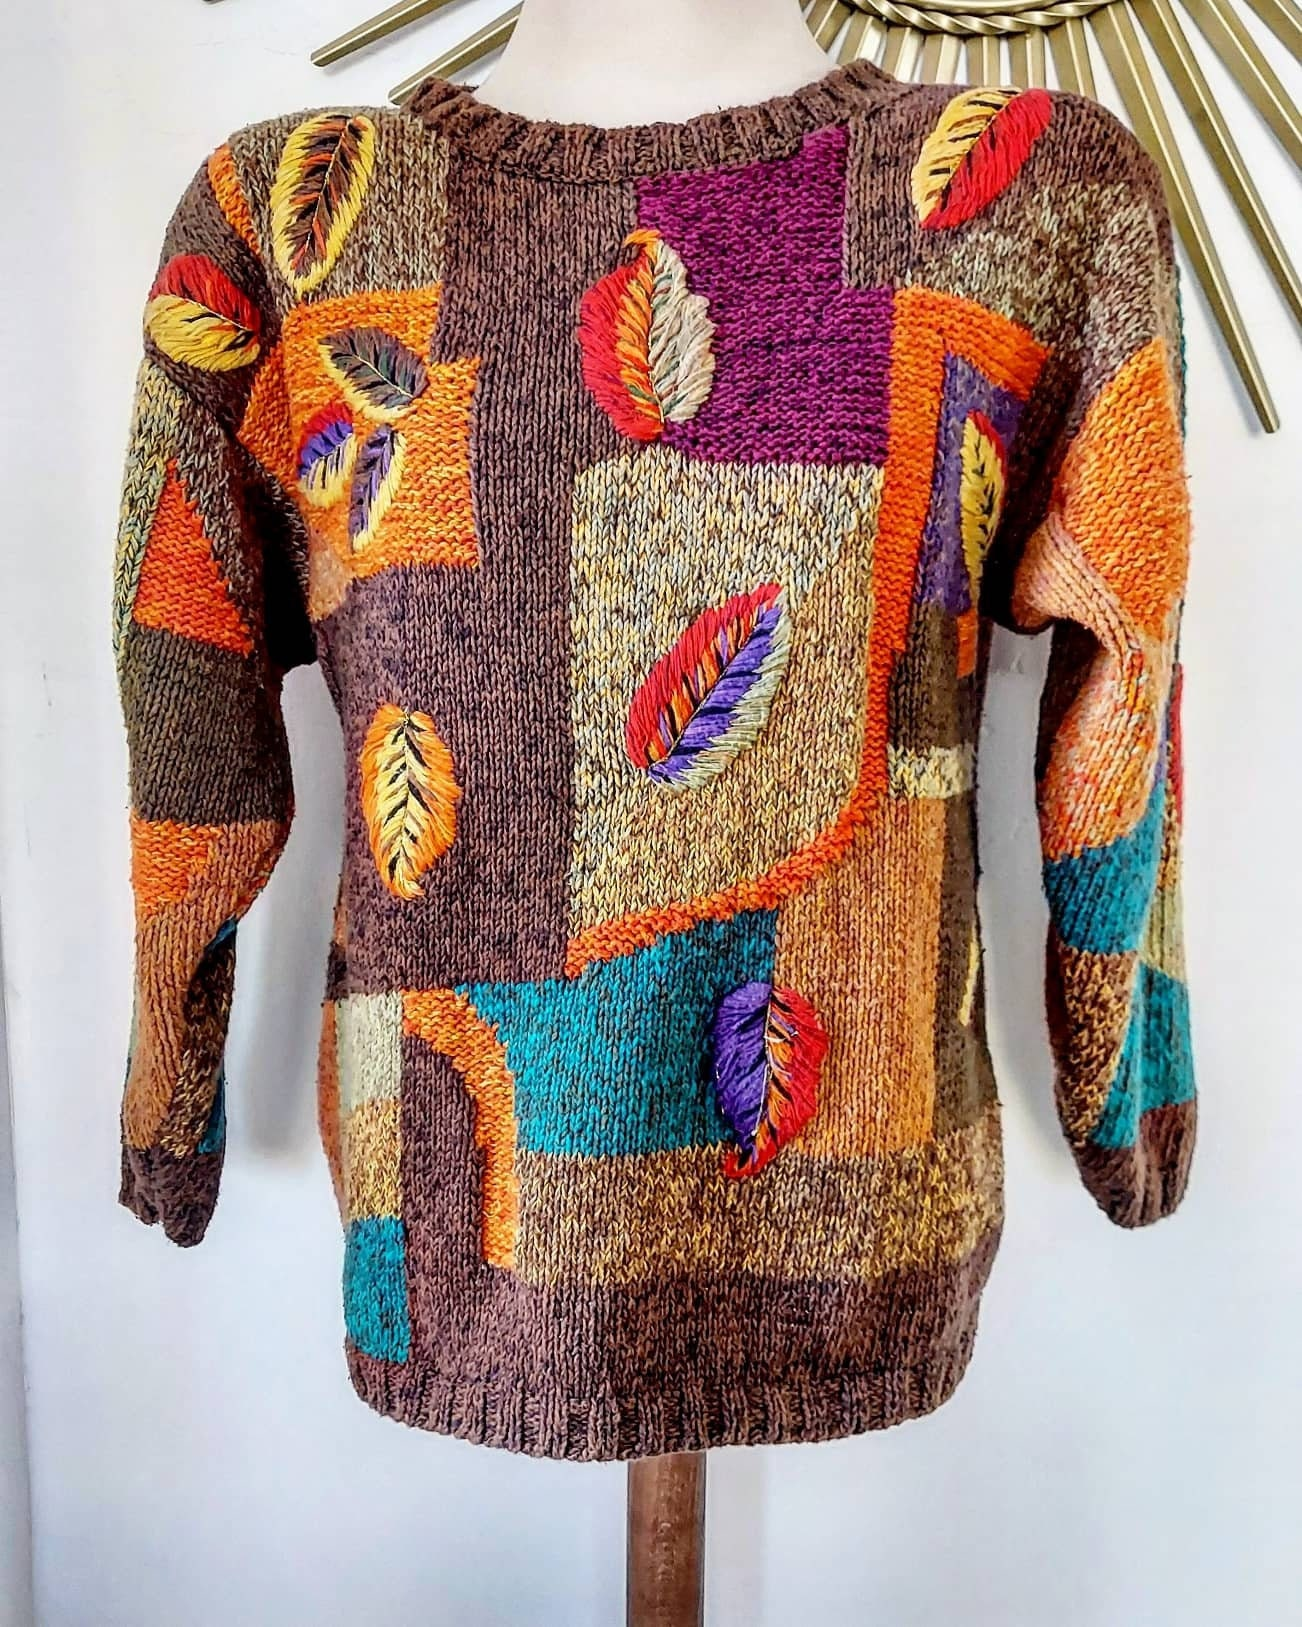 80s Sweatshirts, Sweaters, Vests | Women Fall Colors Chunky Knit 1980S Sweater $48.00 AT vintagedancer.com